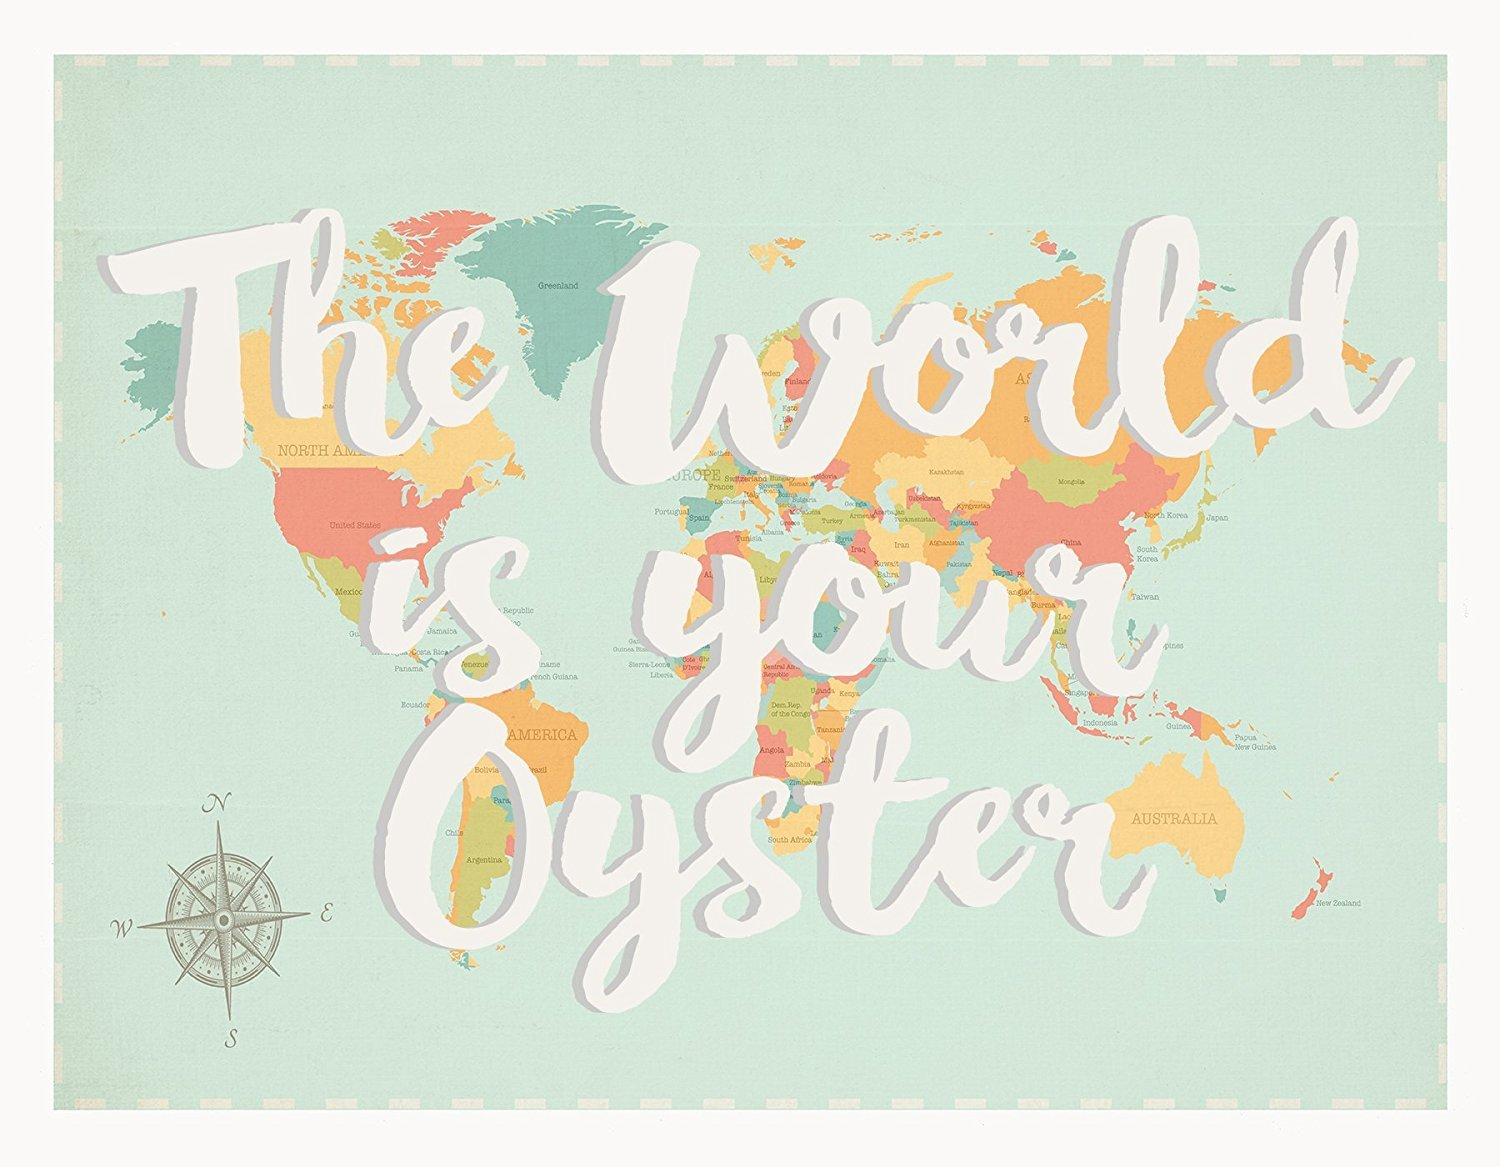 The World Is Your Oyster World Map, 24x36 Inch Print, Children's Wall on glider map, statue map, inverted map, glass map, go to the map, palace map, border map, magnetic map, large map, world map, trench map, floor map, desk map, plant map, plate map, atlas map, home map, green map, englewood map, step map,